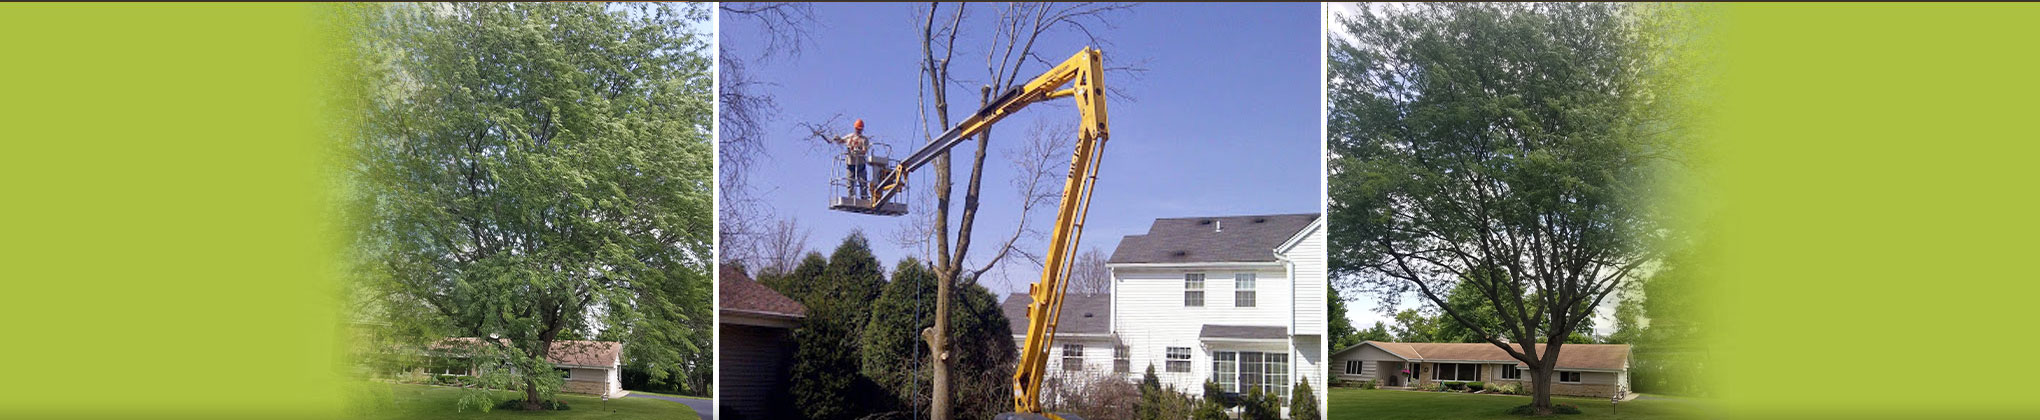 Dan's Tree Service Inc.